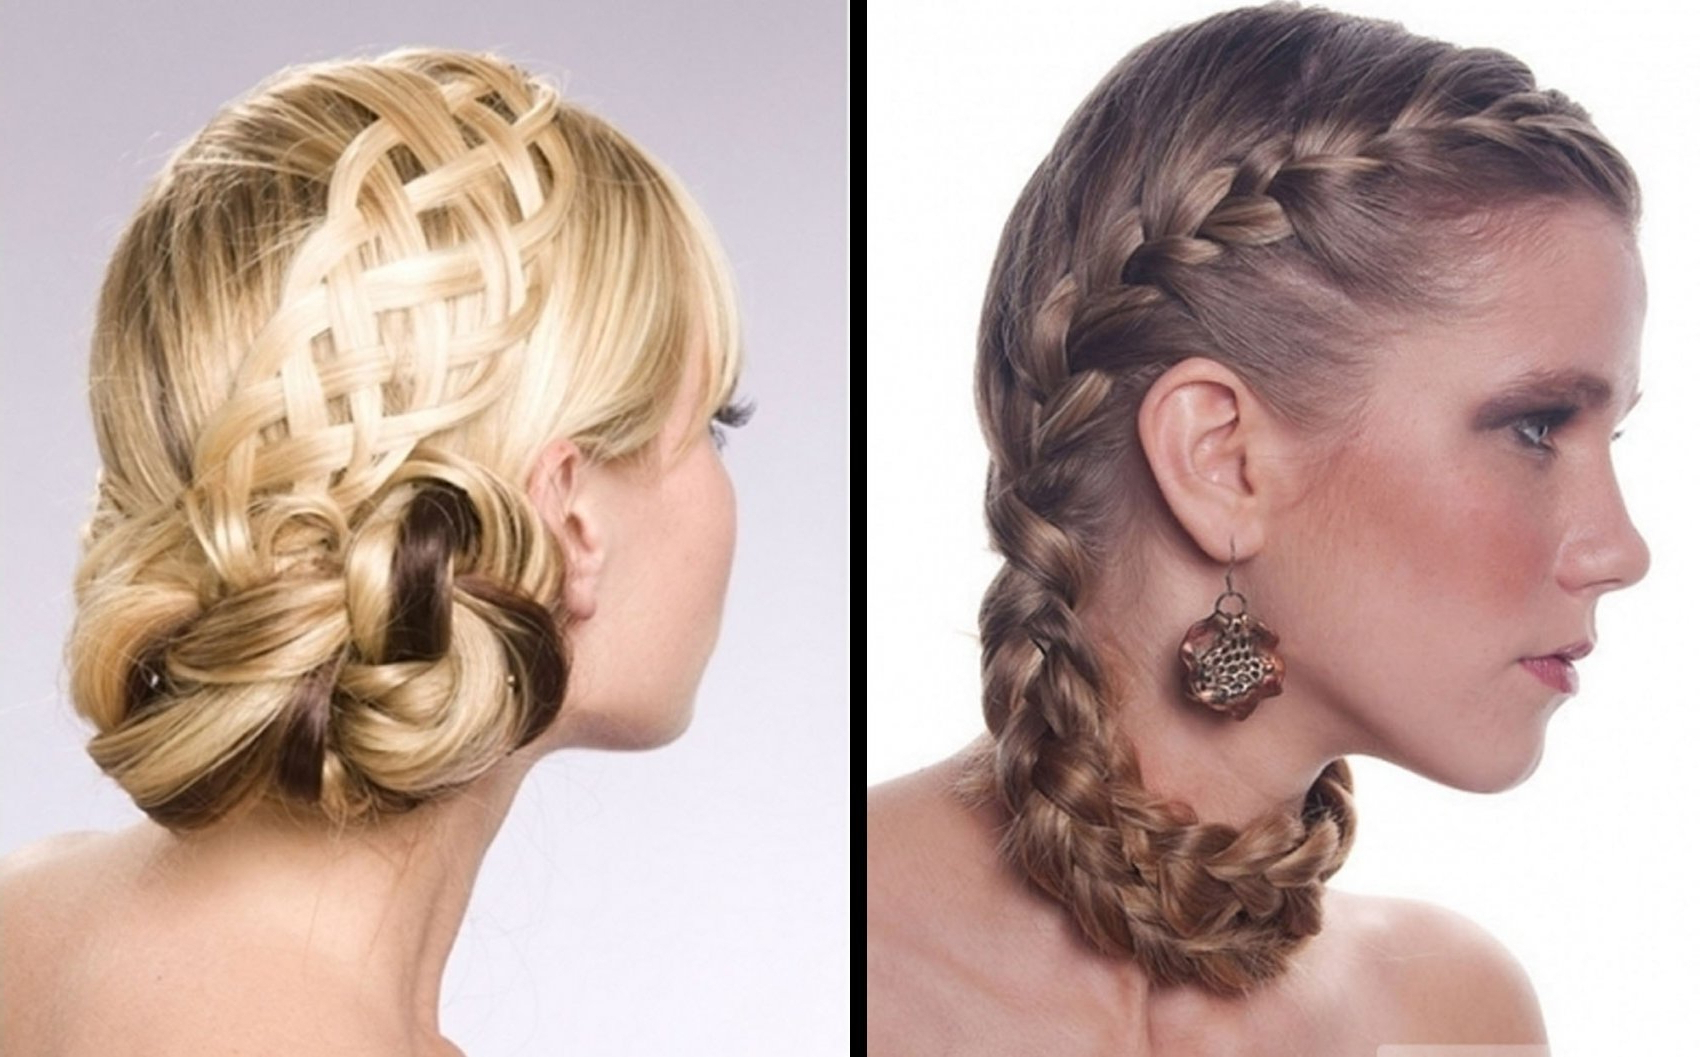 Medium Hair Styles Ideas Within Widely Used Medium Hairstyles For Prom (View 8 of 20)